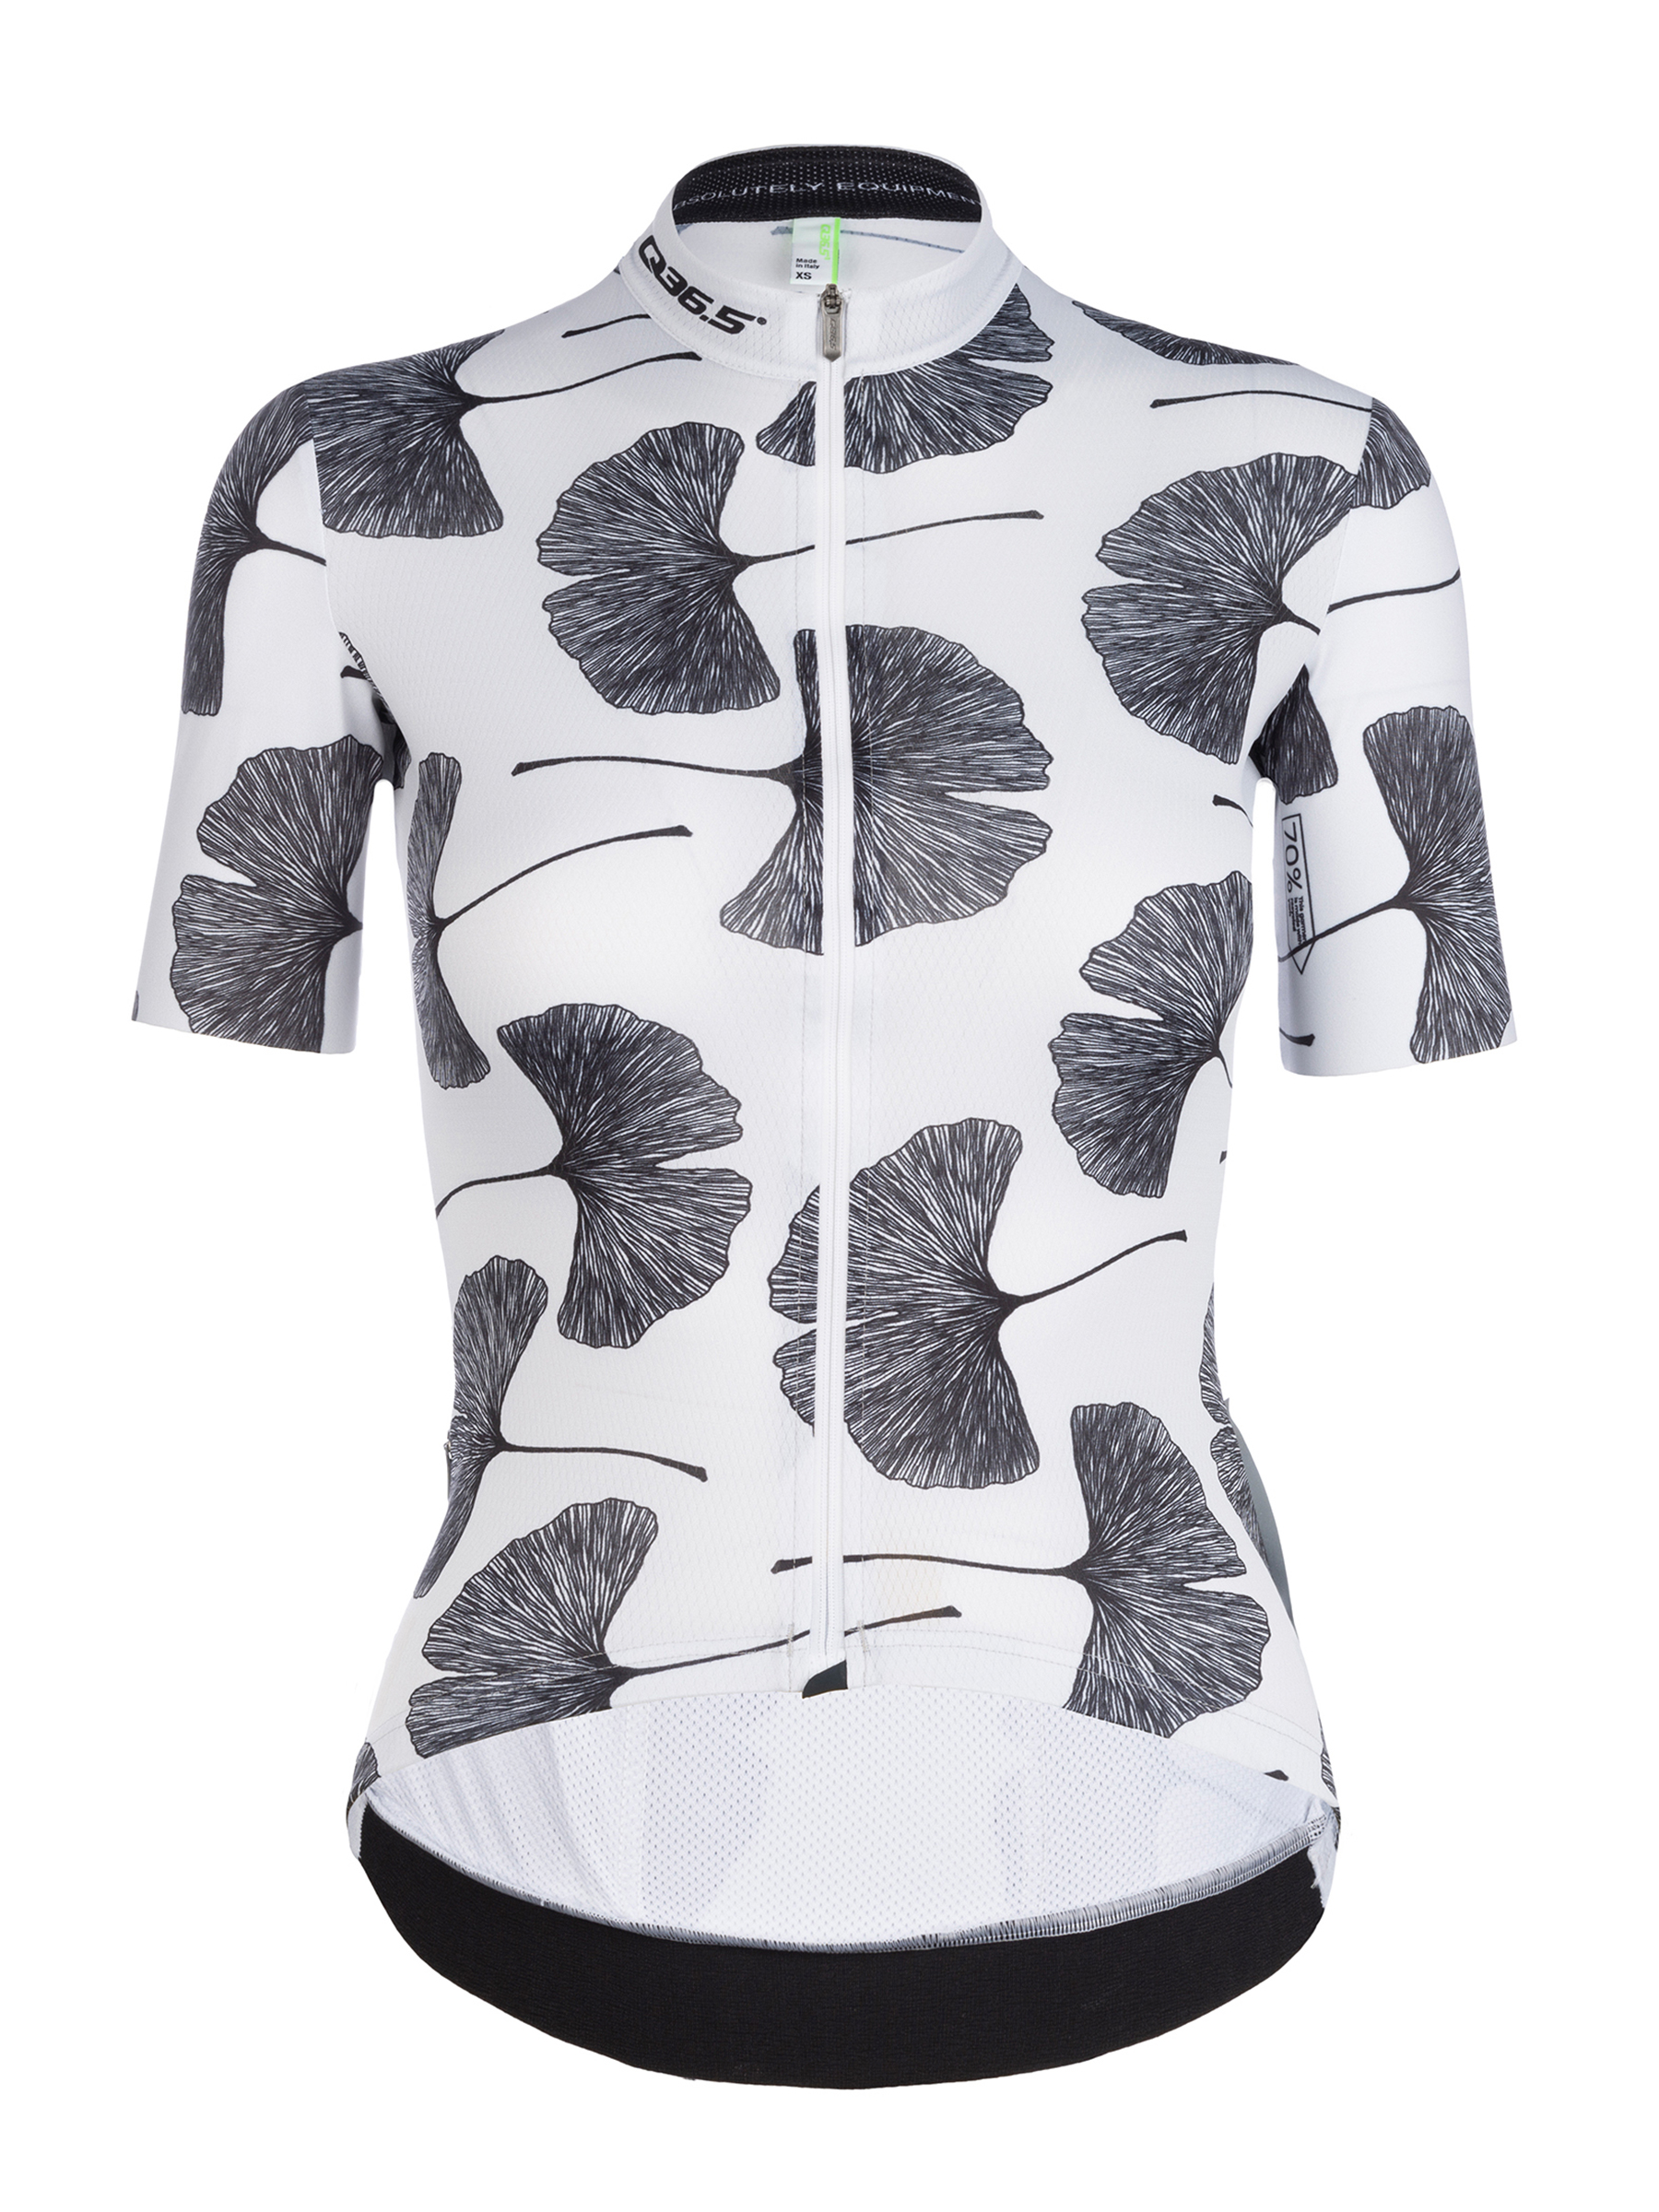 Womens cycling jersey short sleeve G1 Ginko Q36.5